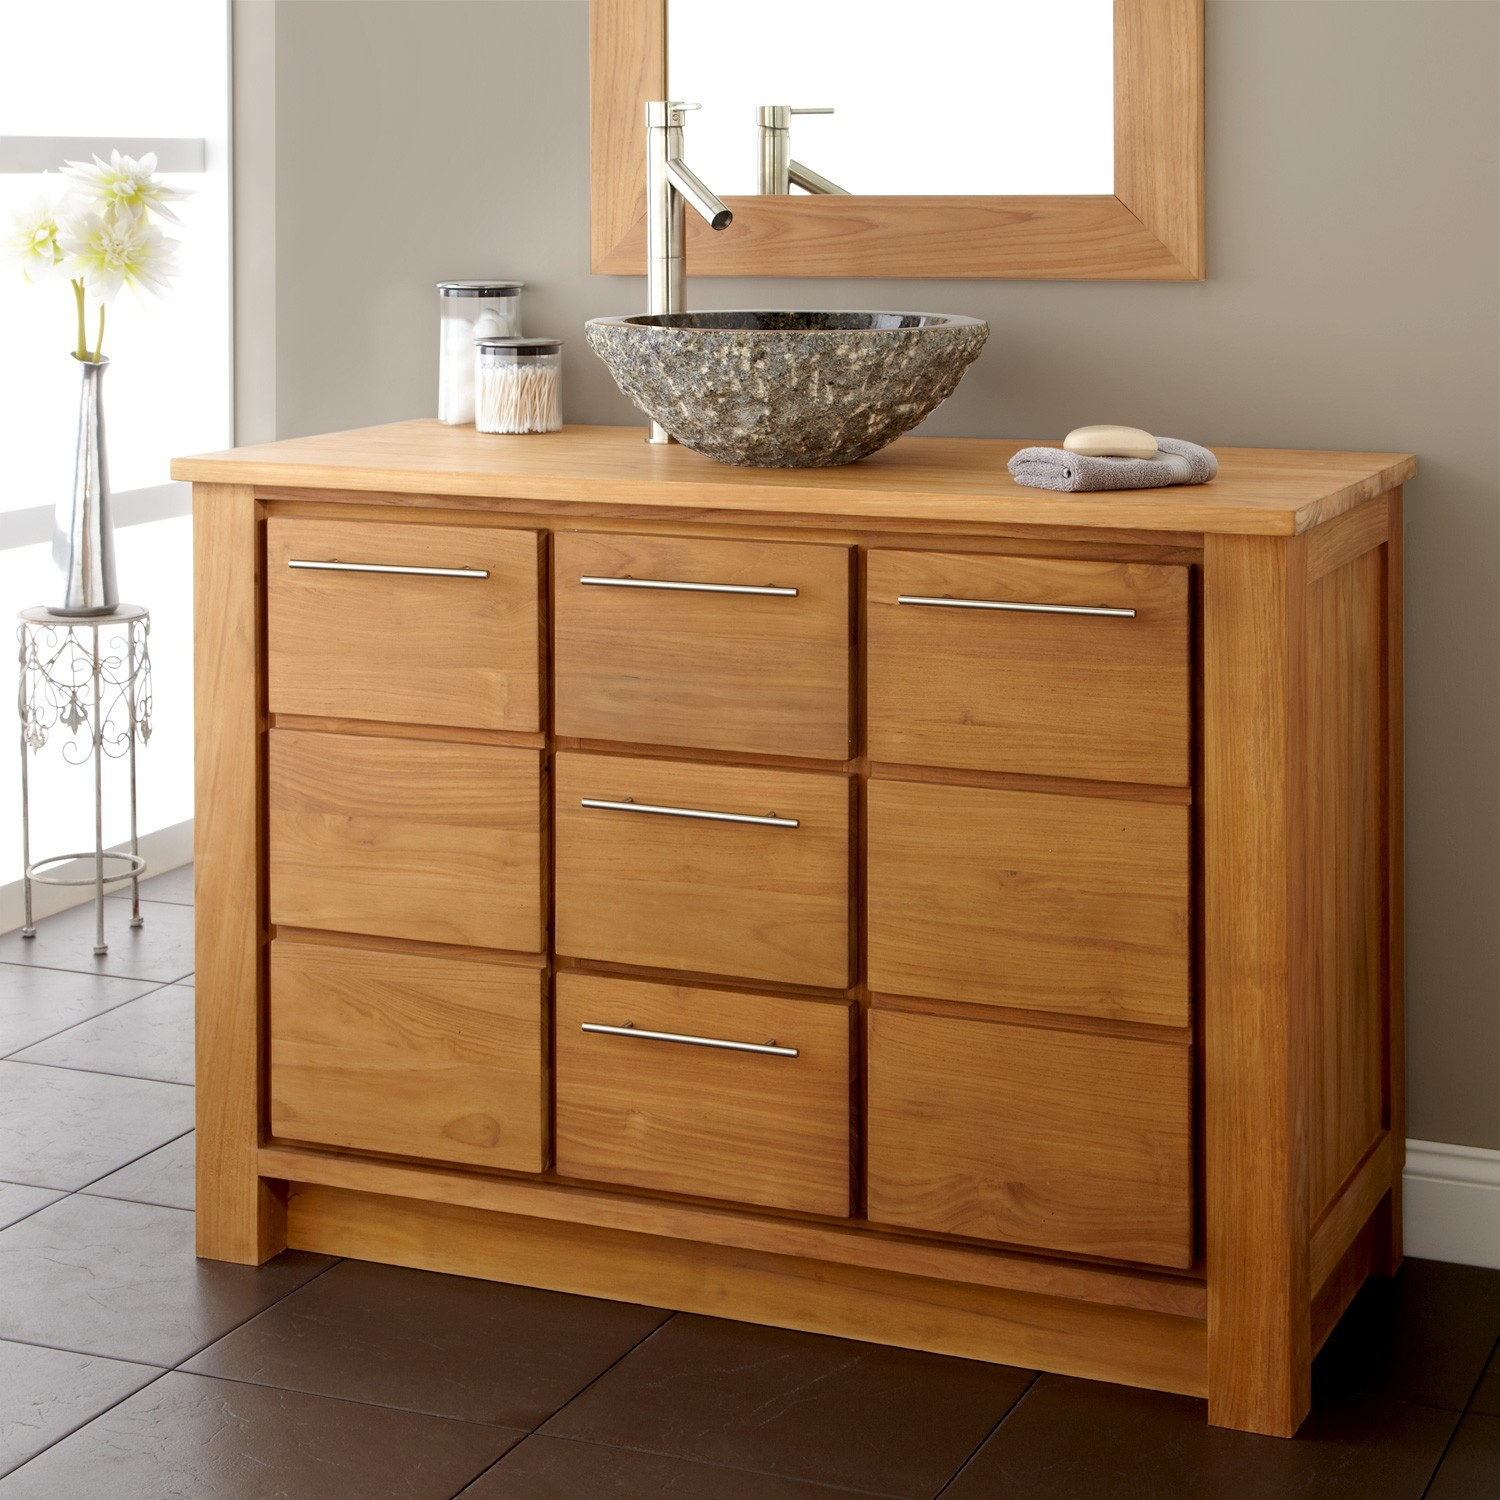 Solid Wood Bathroom Vanity Units